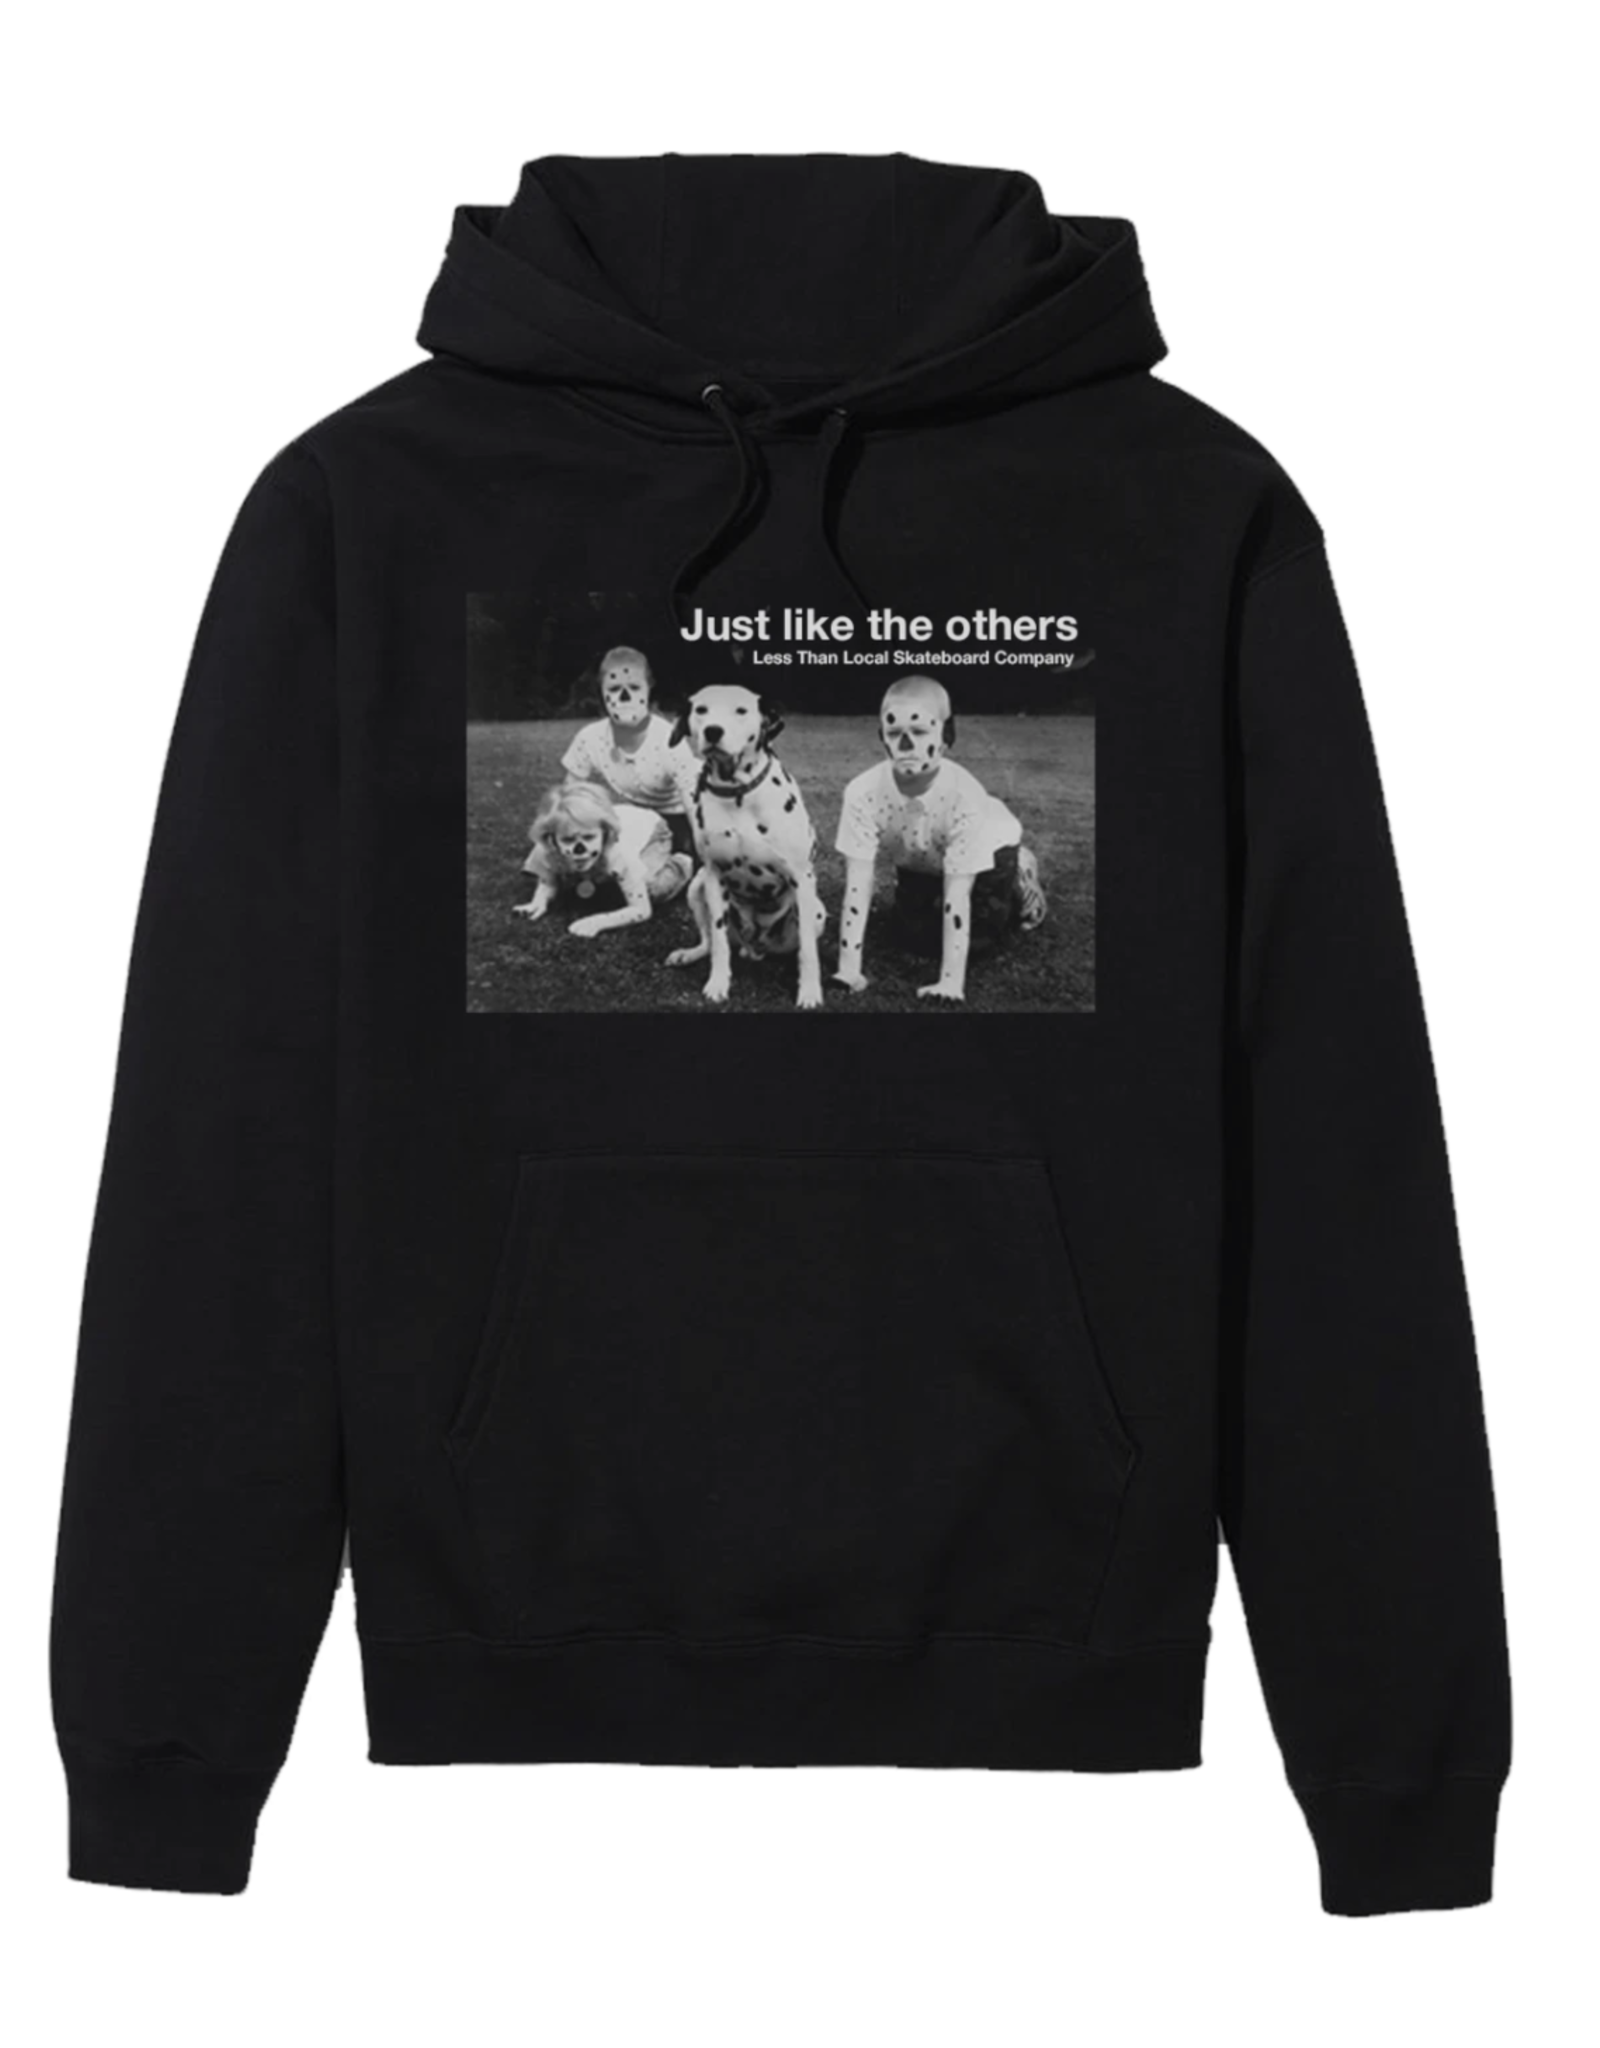 LESS THAN LOCAL LESS THAN LOCAL OTHERS HOODIE